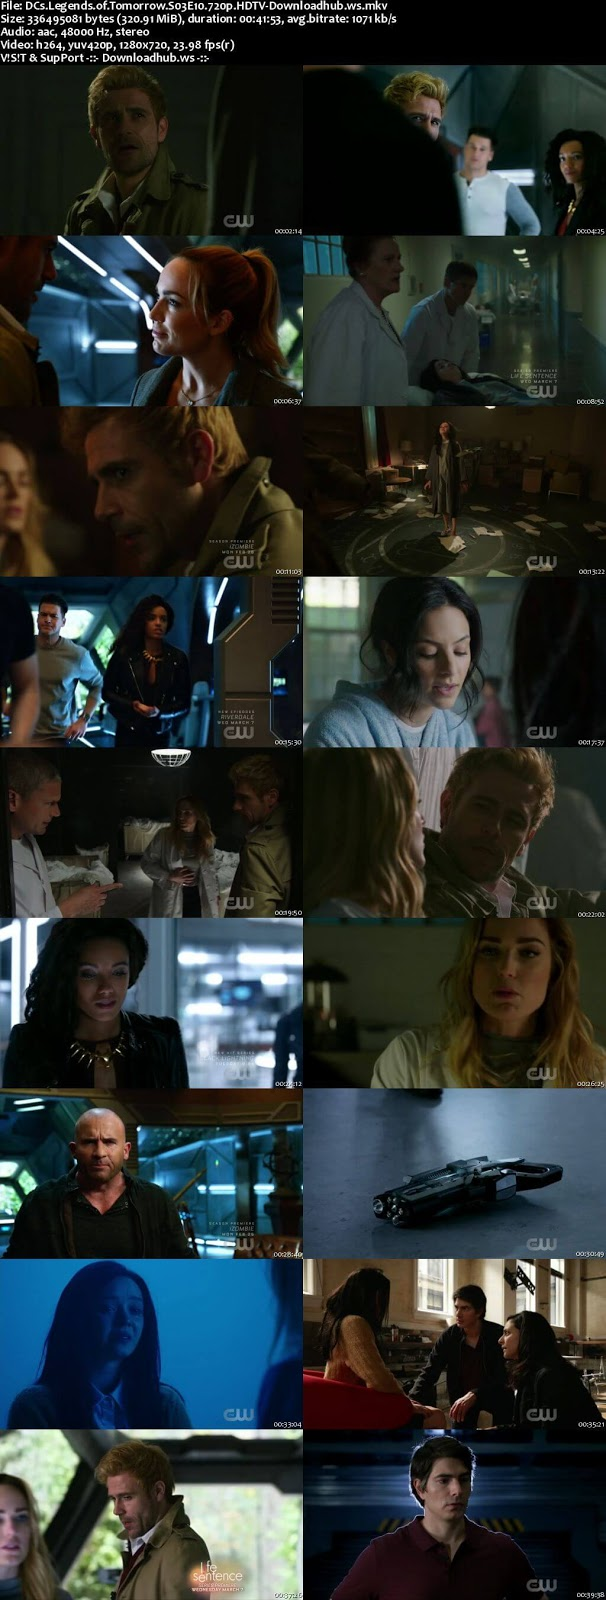 DCs Legends of Tomorrow S03E10 320MB HDTV 720p x264